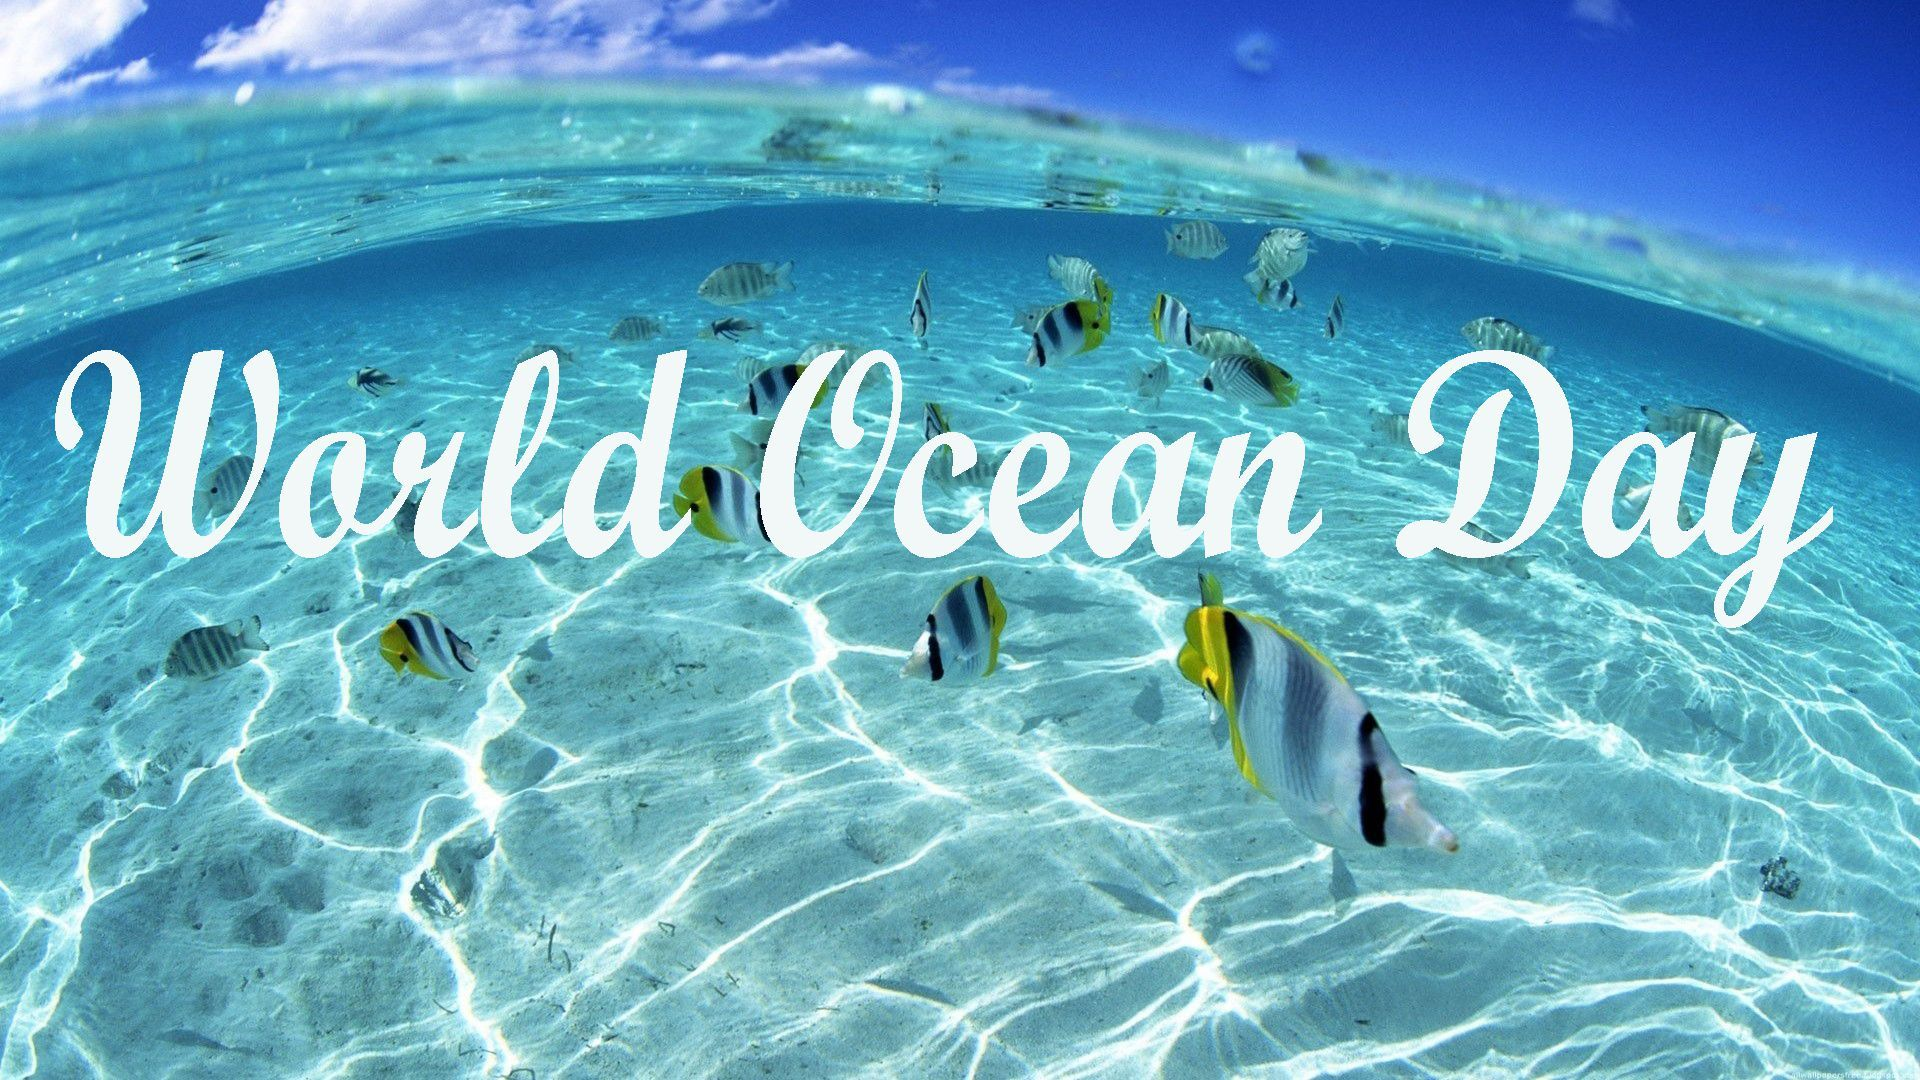 World Oceans Day Naveen pledges to keep blue planet healthy 1920x1080